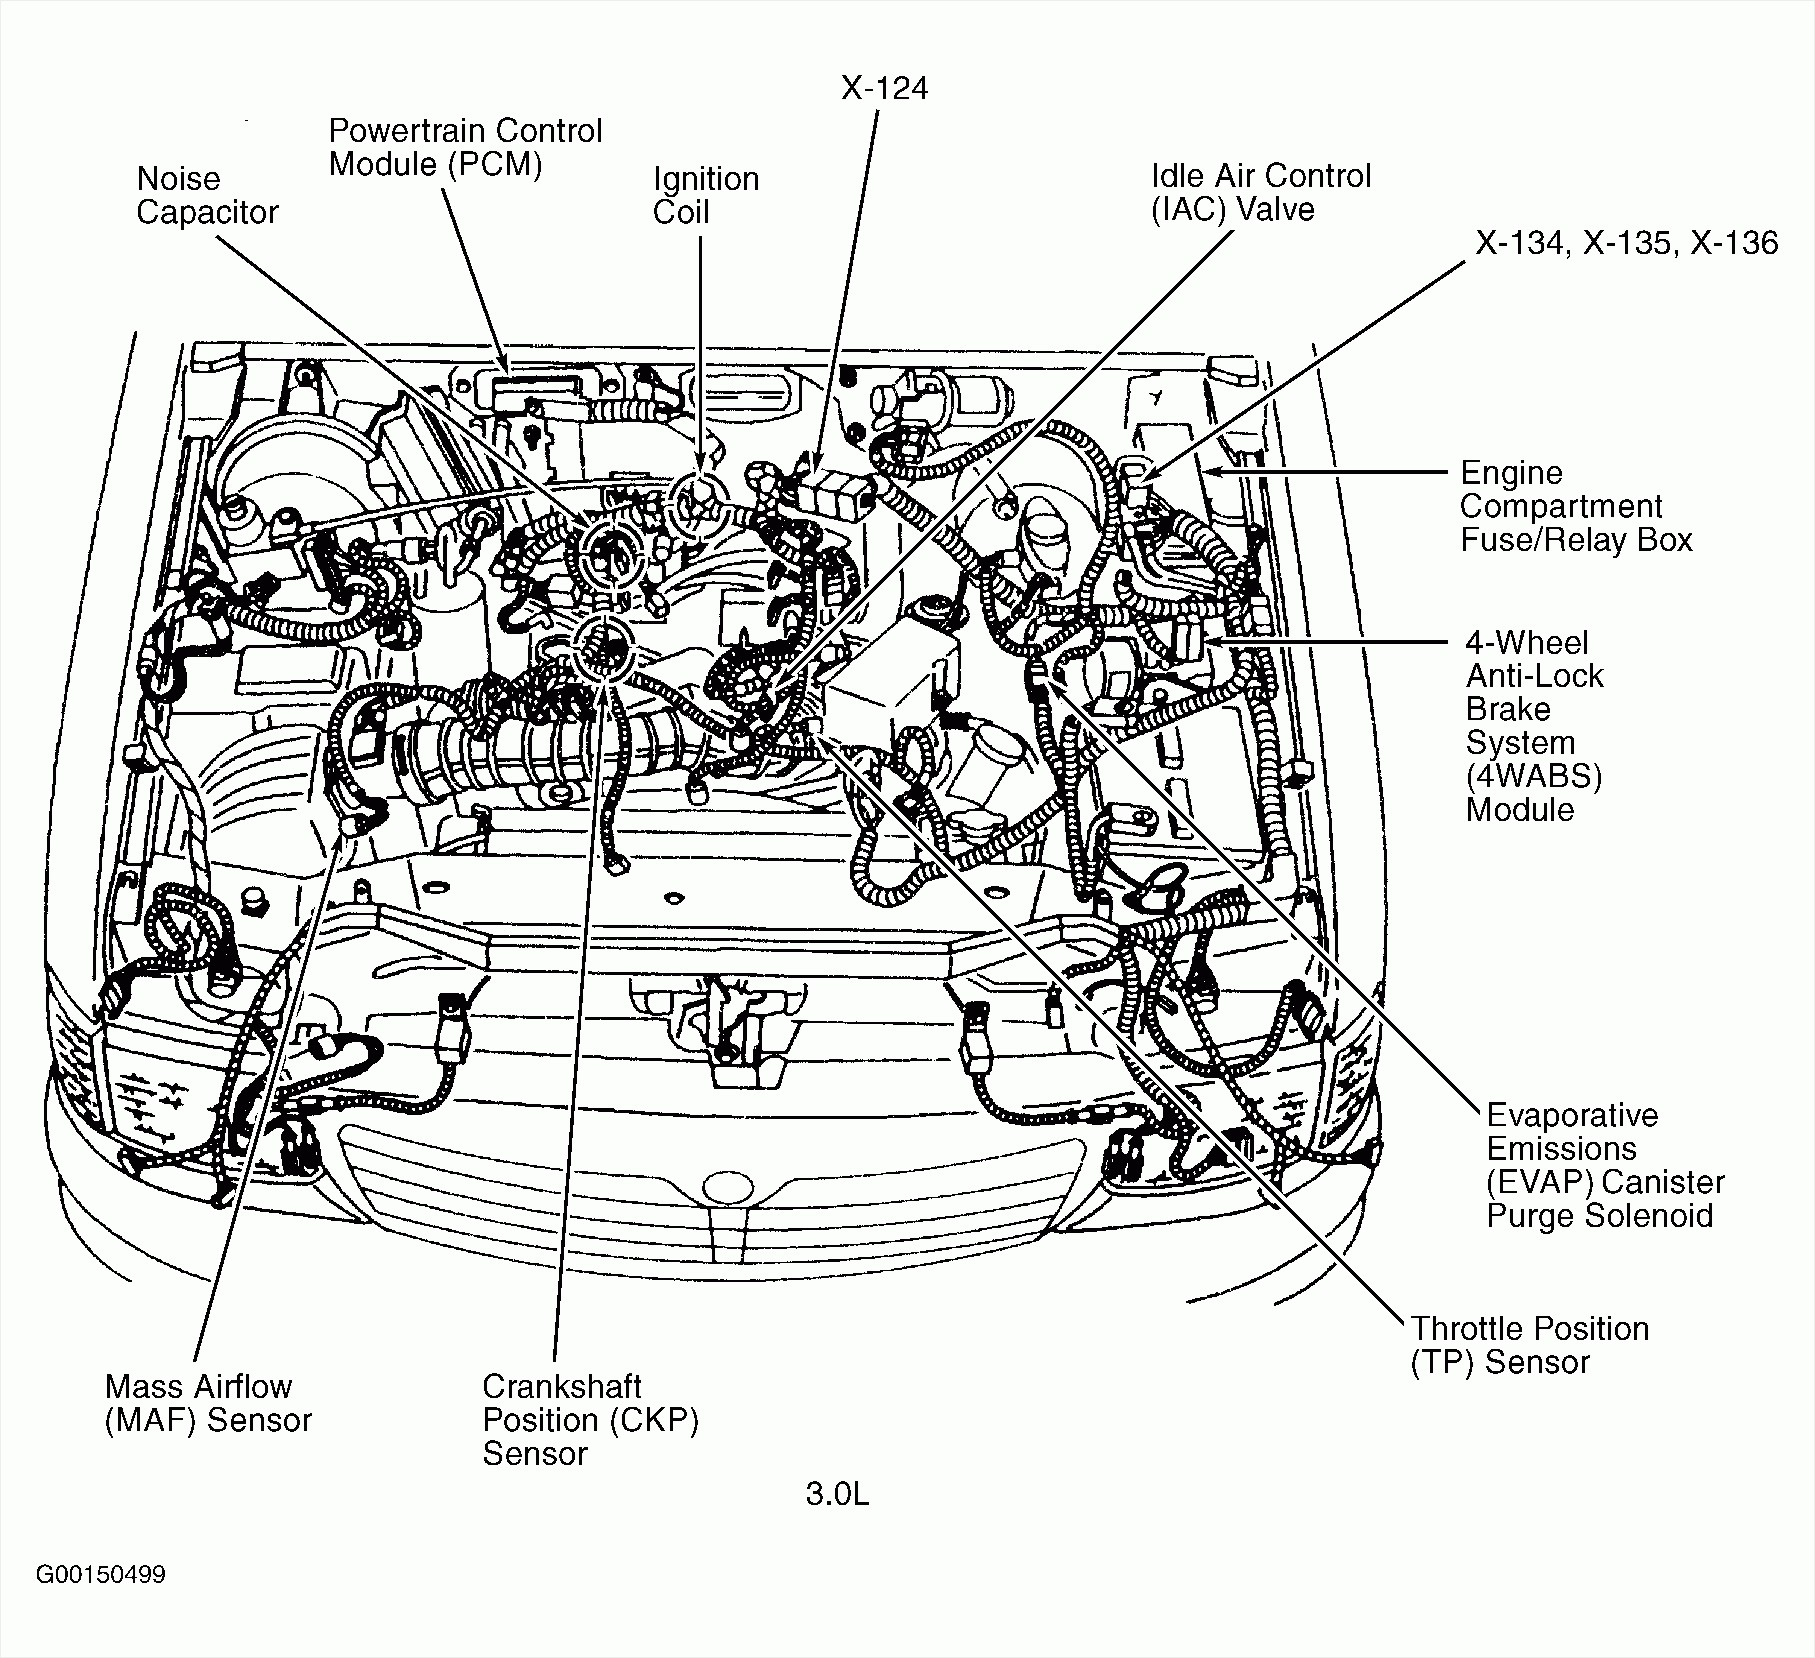 2009 Kia Optima Engine Diagram Not Lossing Wiring Sedona Fuse Box 05 F250 6 0 Best Site Harness 2005 2004